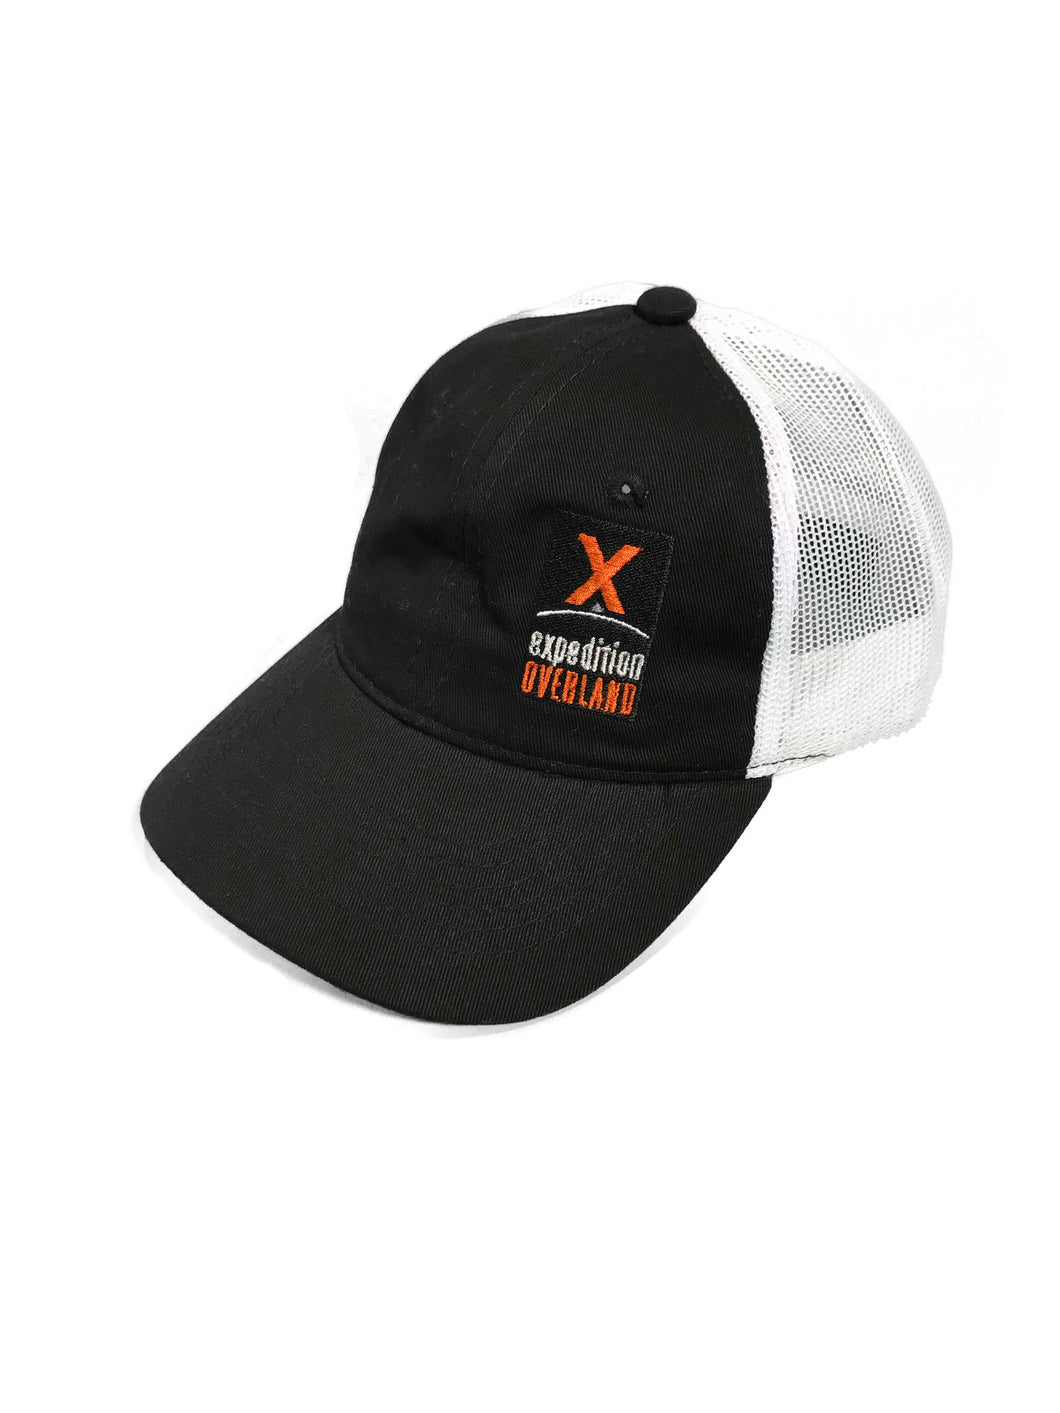 X Overland™ Soft Top Hat | Kids